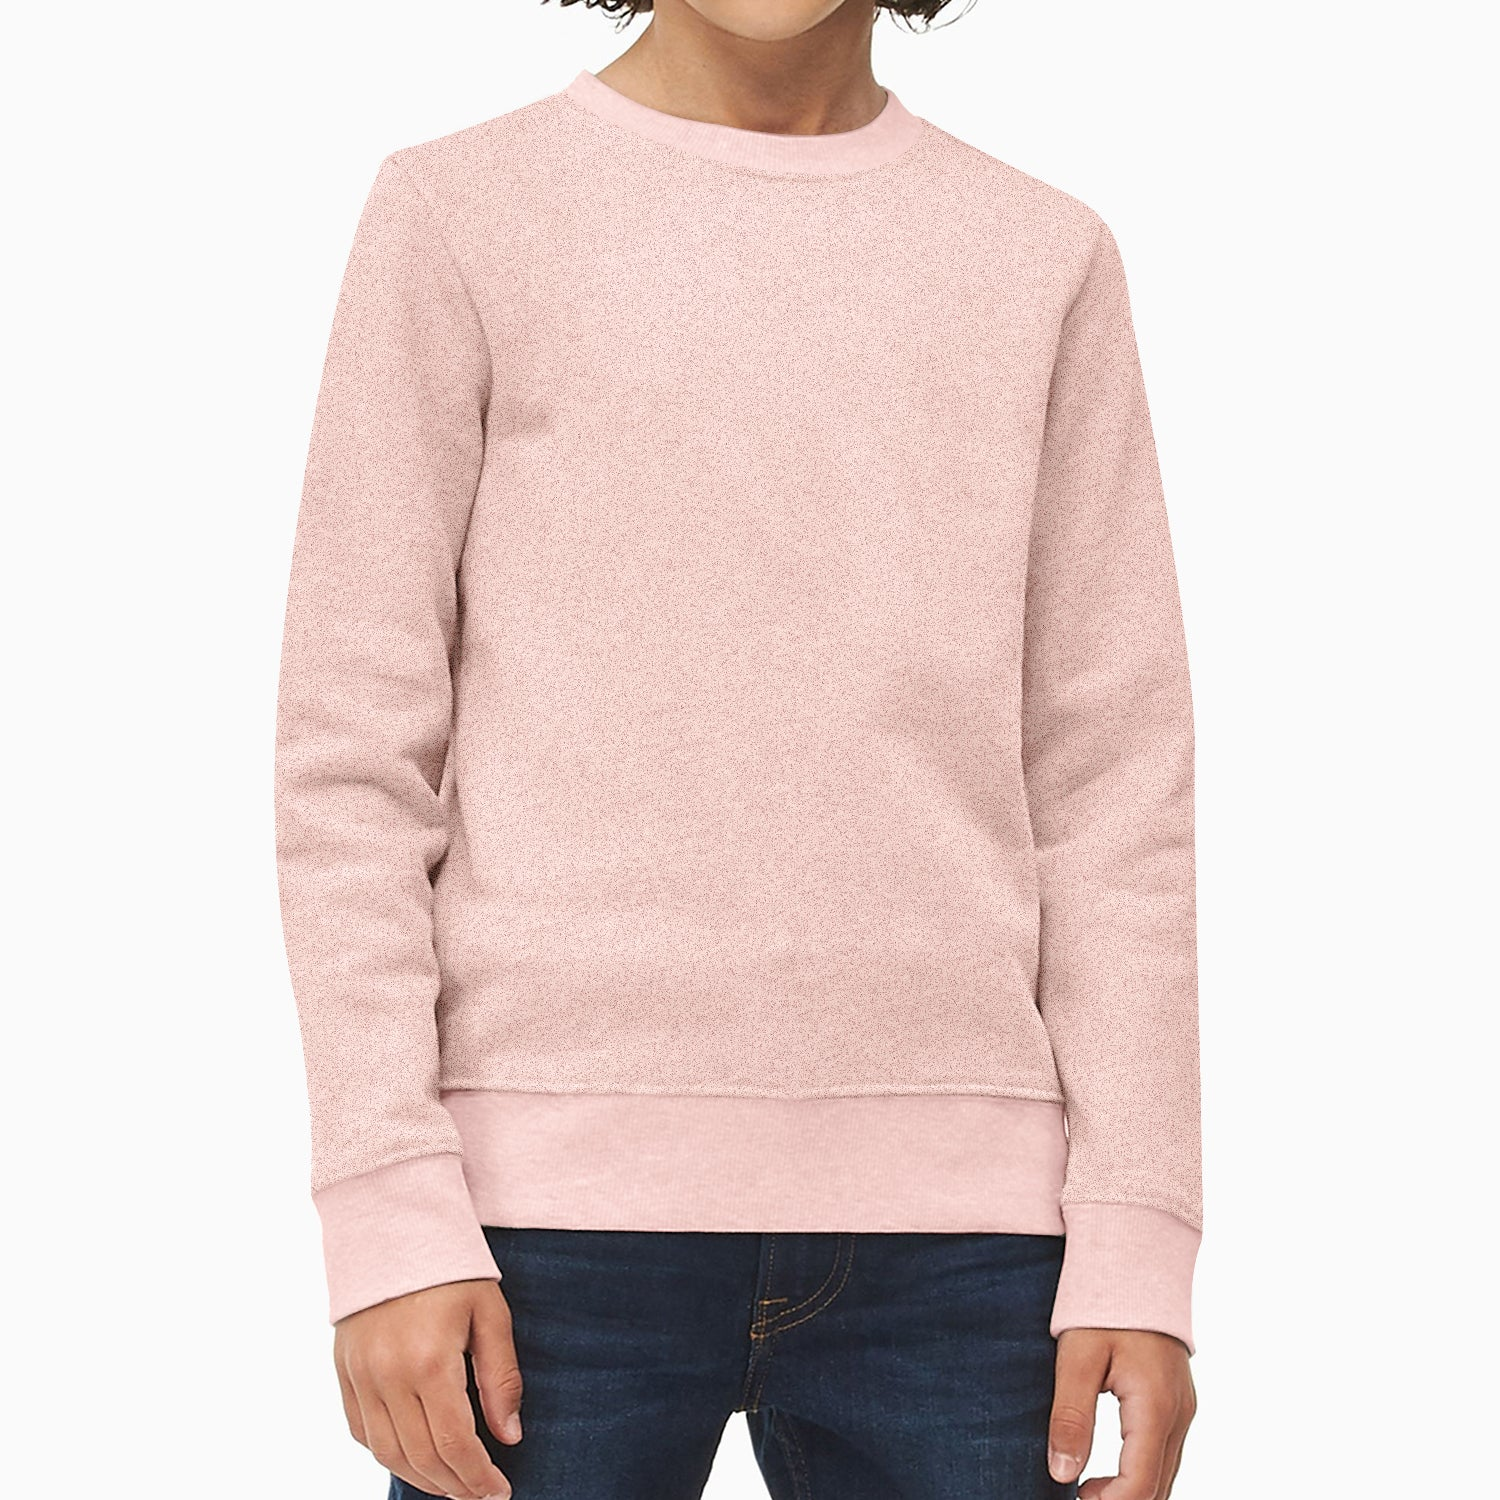 Mango Terry Fleece Sweatshirt For Kids-Light Pink Melange-BE12797